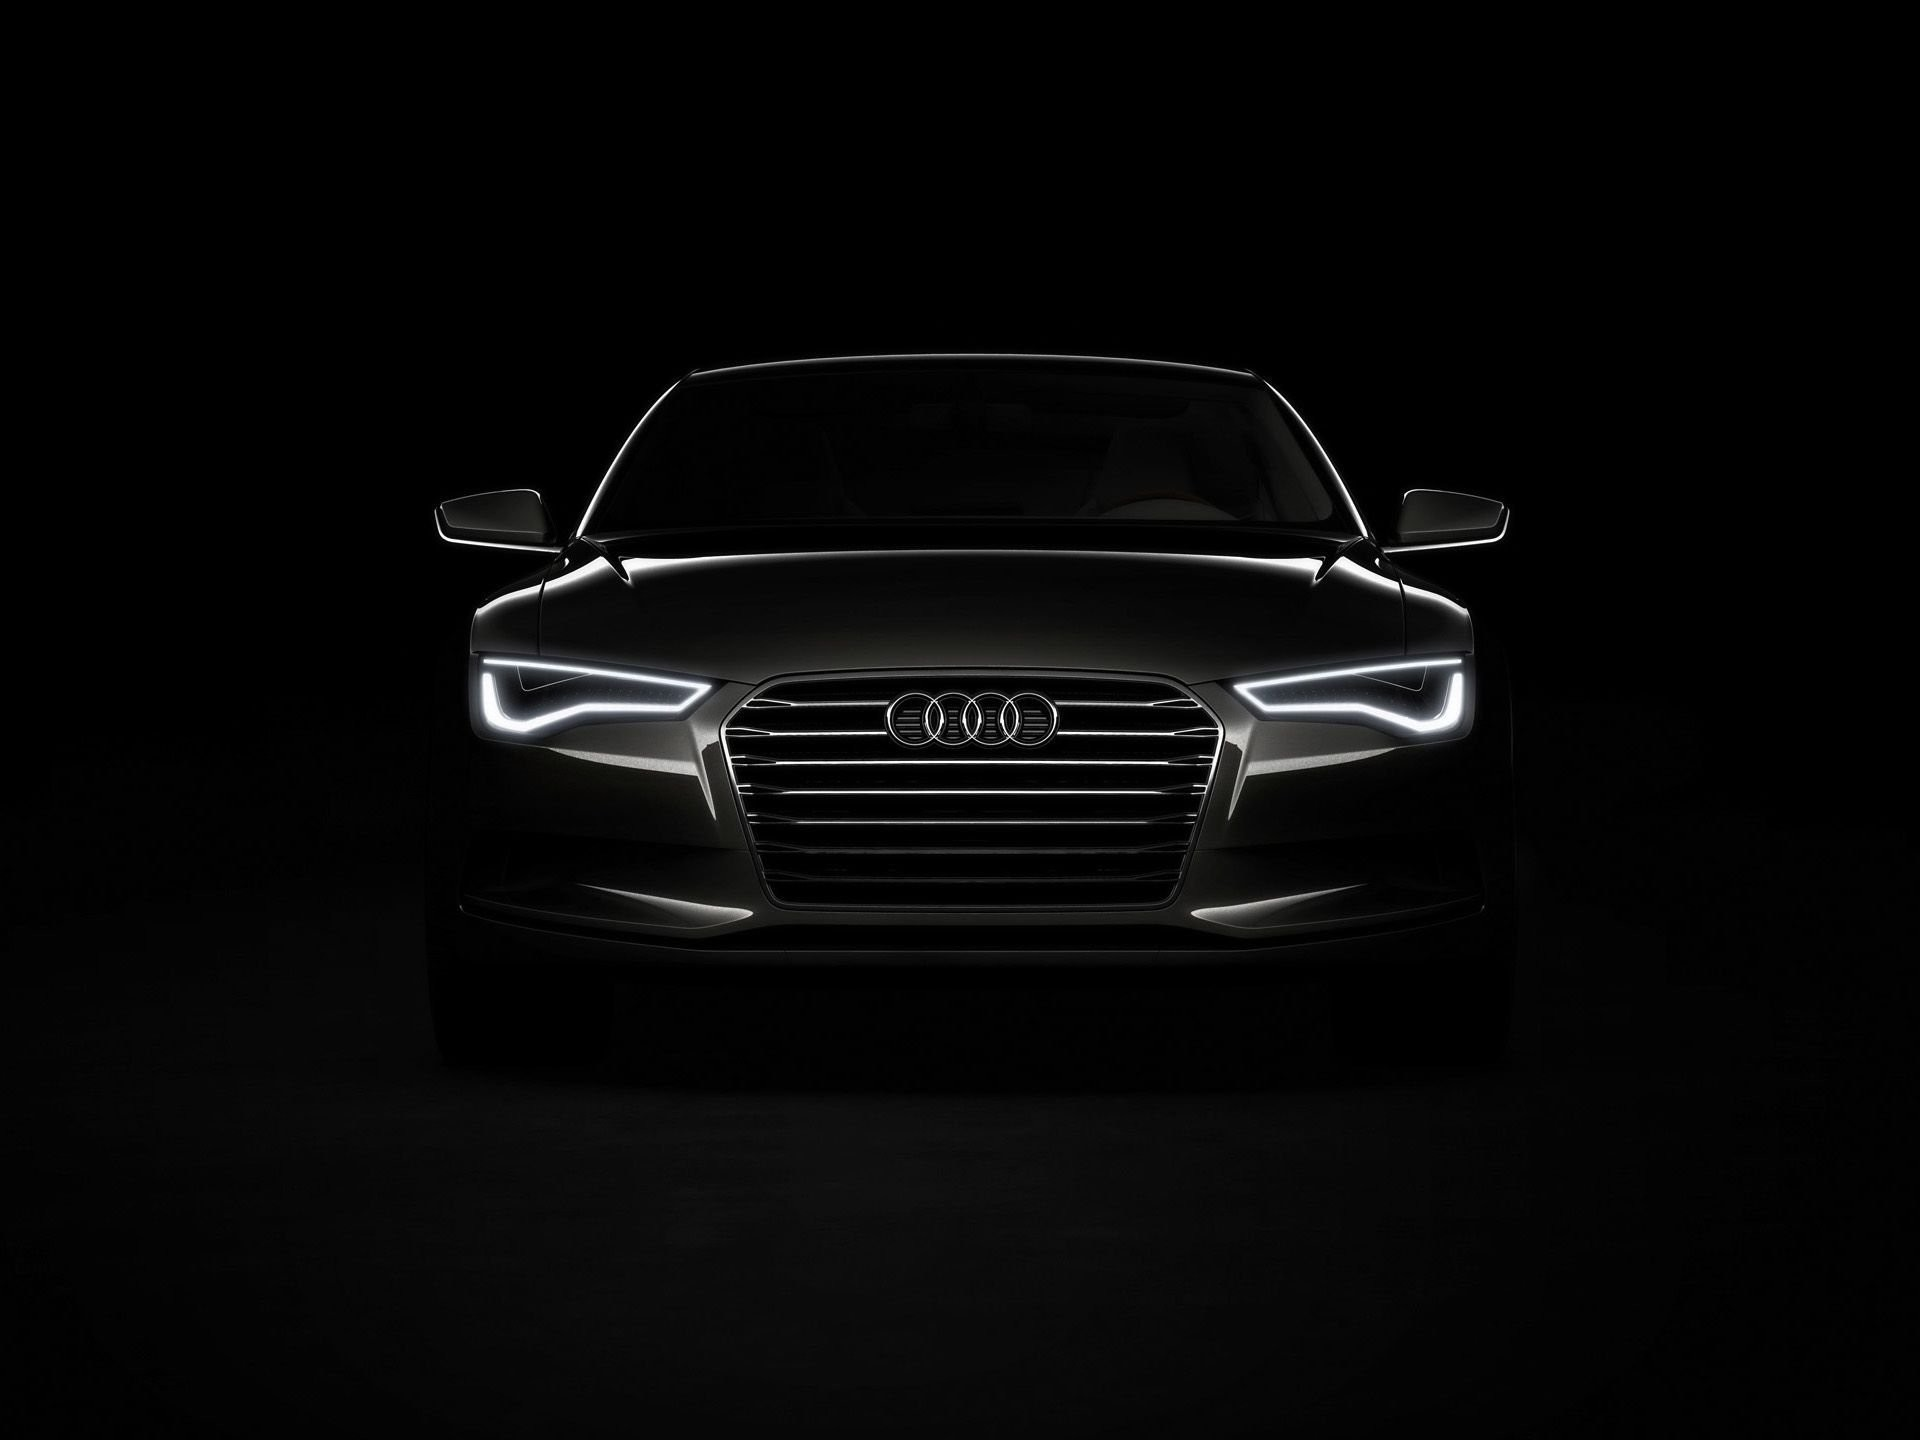 1920x1440 Cars Audi Front Wallpapers Desktop Phone Tablet Awesome R8 Wallpaper Black